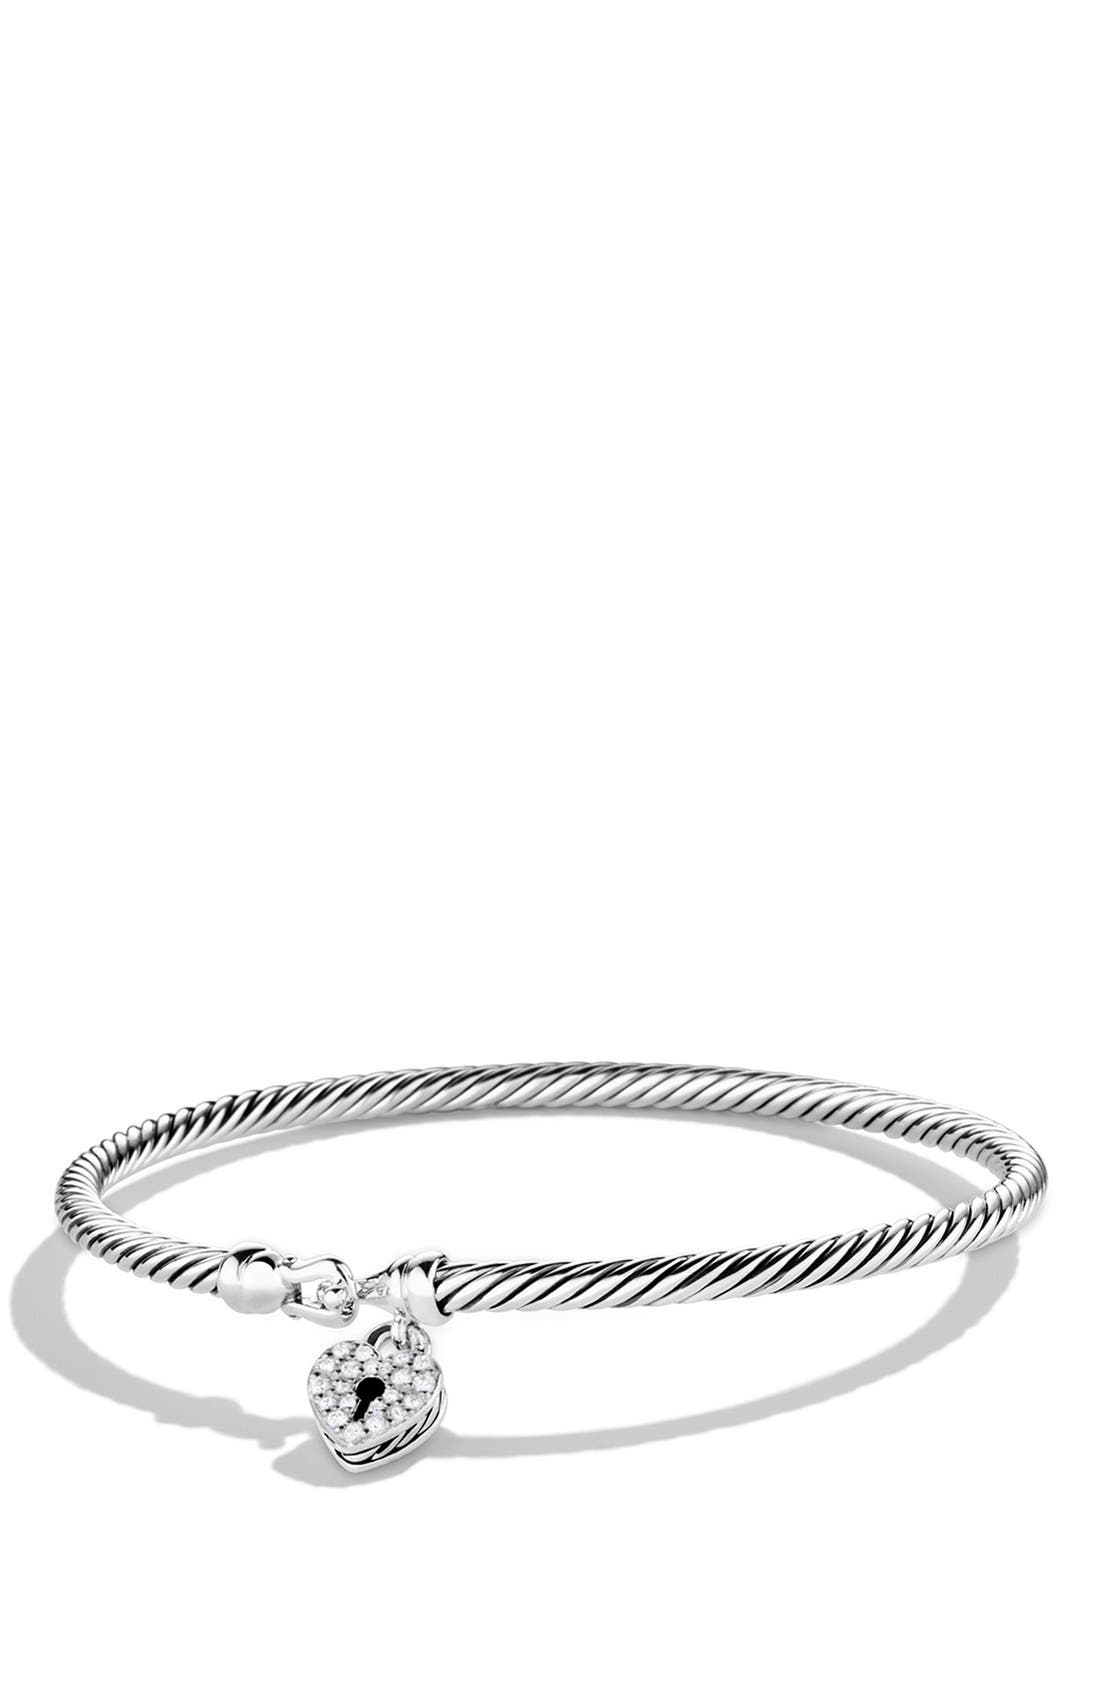 'Cable Collectibles' Heart Lock Bracelet with Diamonds,                         Main,                         color, Diamond